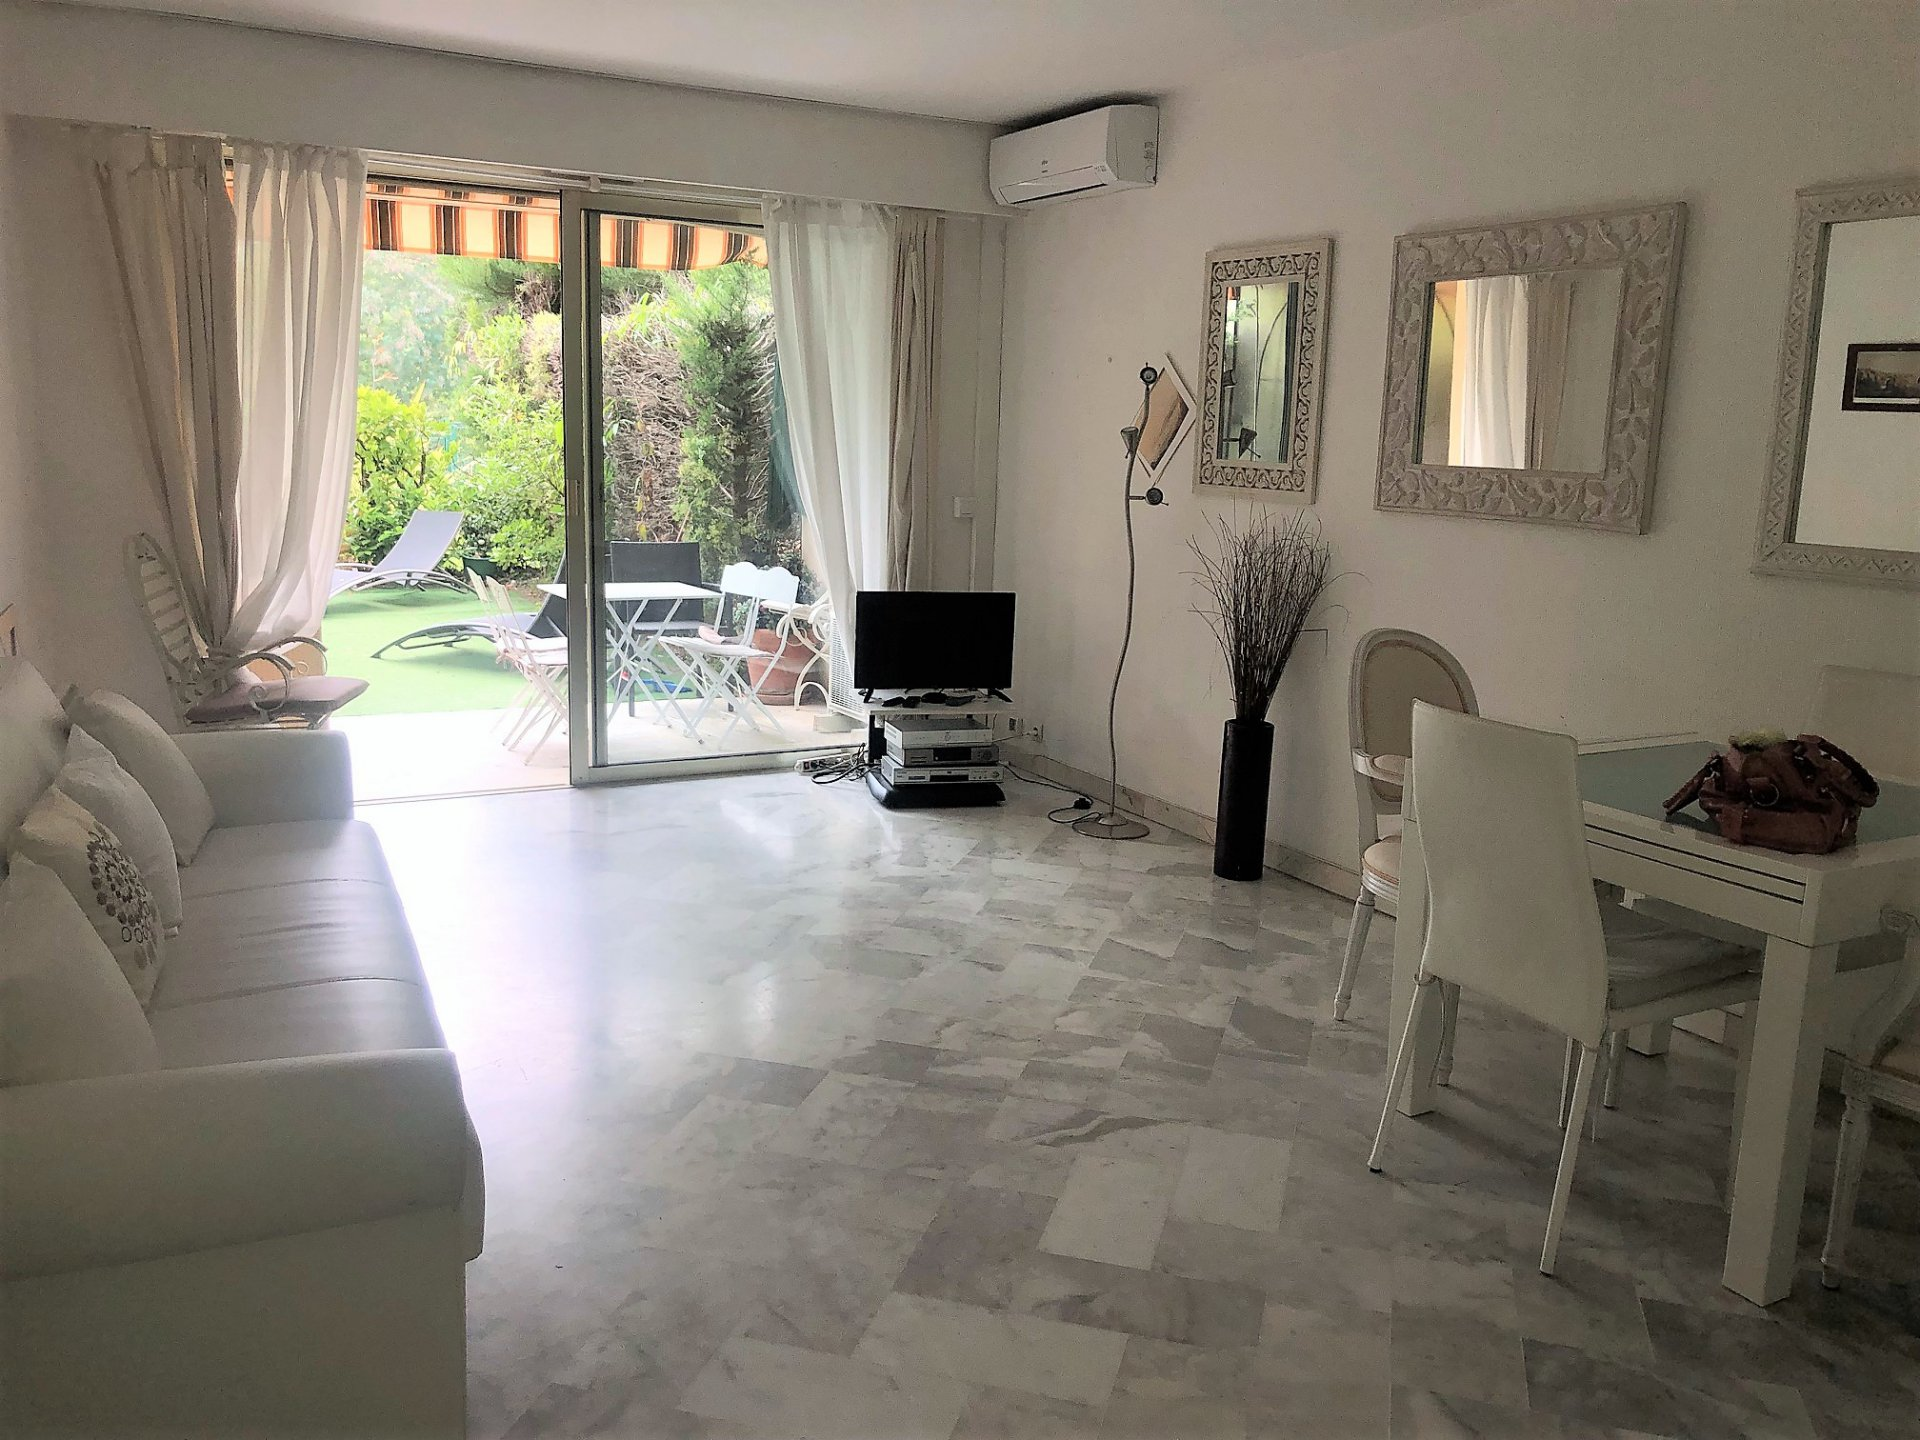 CANNES SALE 2 ROOMS IN ABSOLUTE CALM